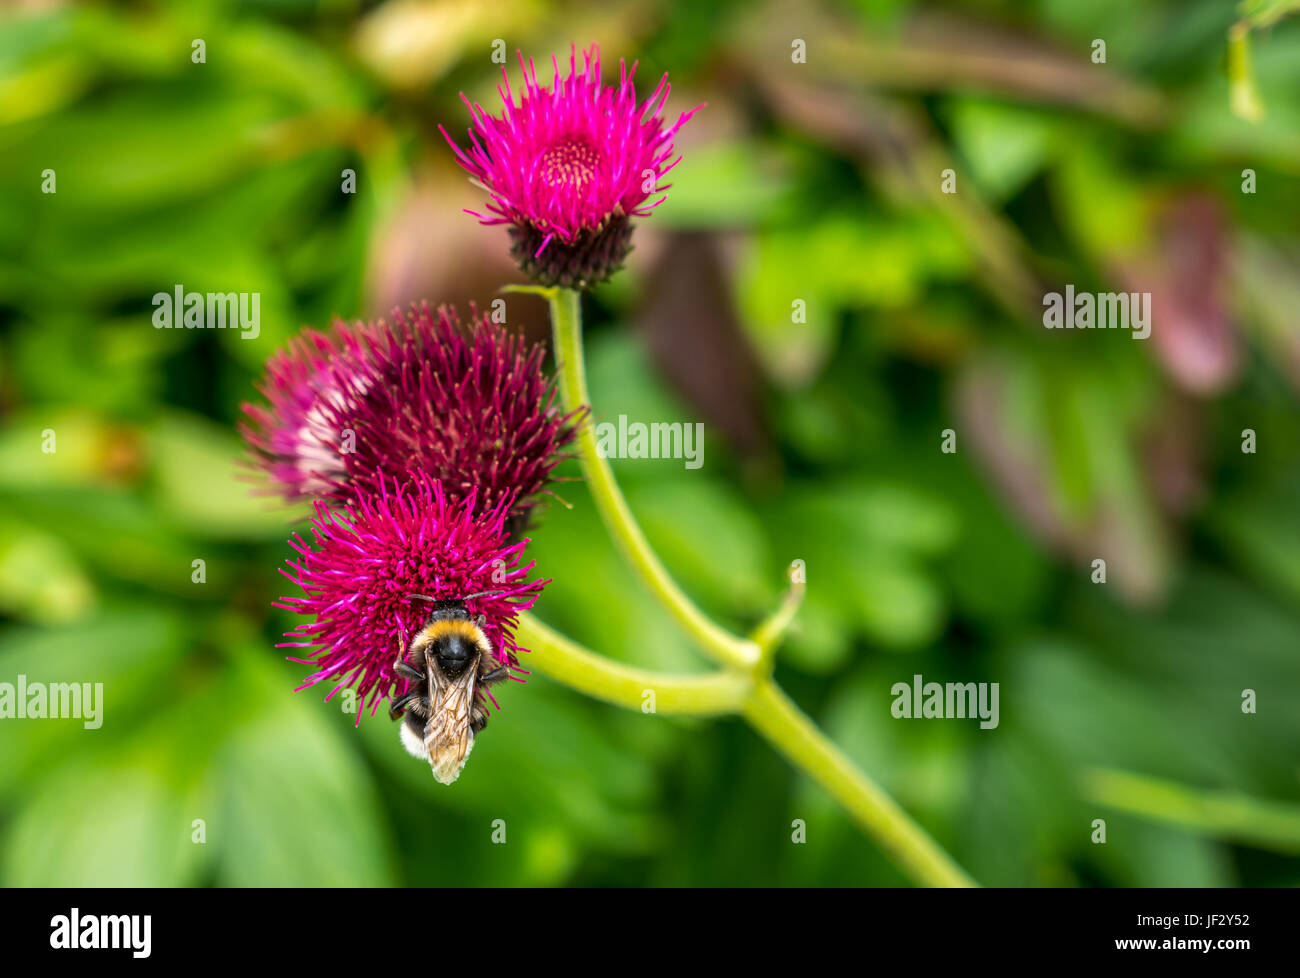 Close up of bumblebee on magenta thistle, Cirsium rivulare Atropurpureum, with blurred background, Dirleton Castle - Stock Image